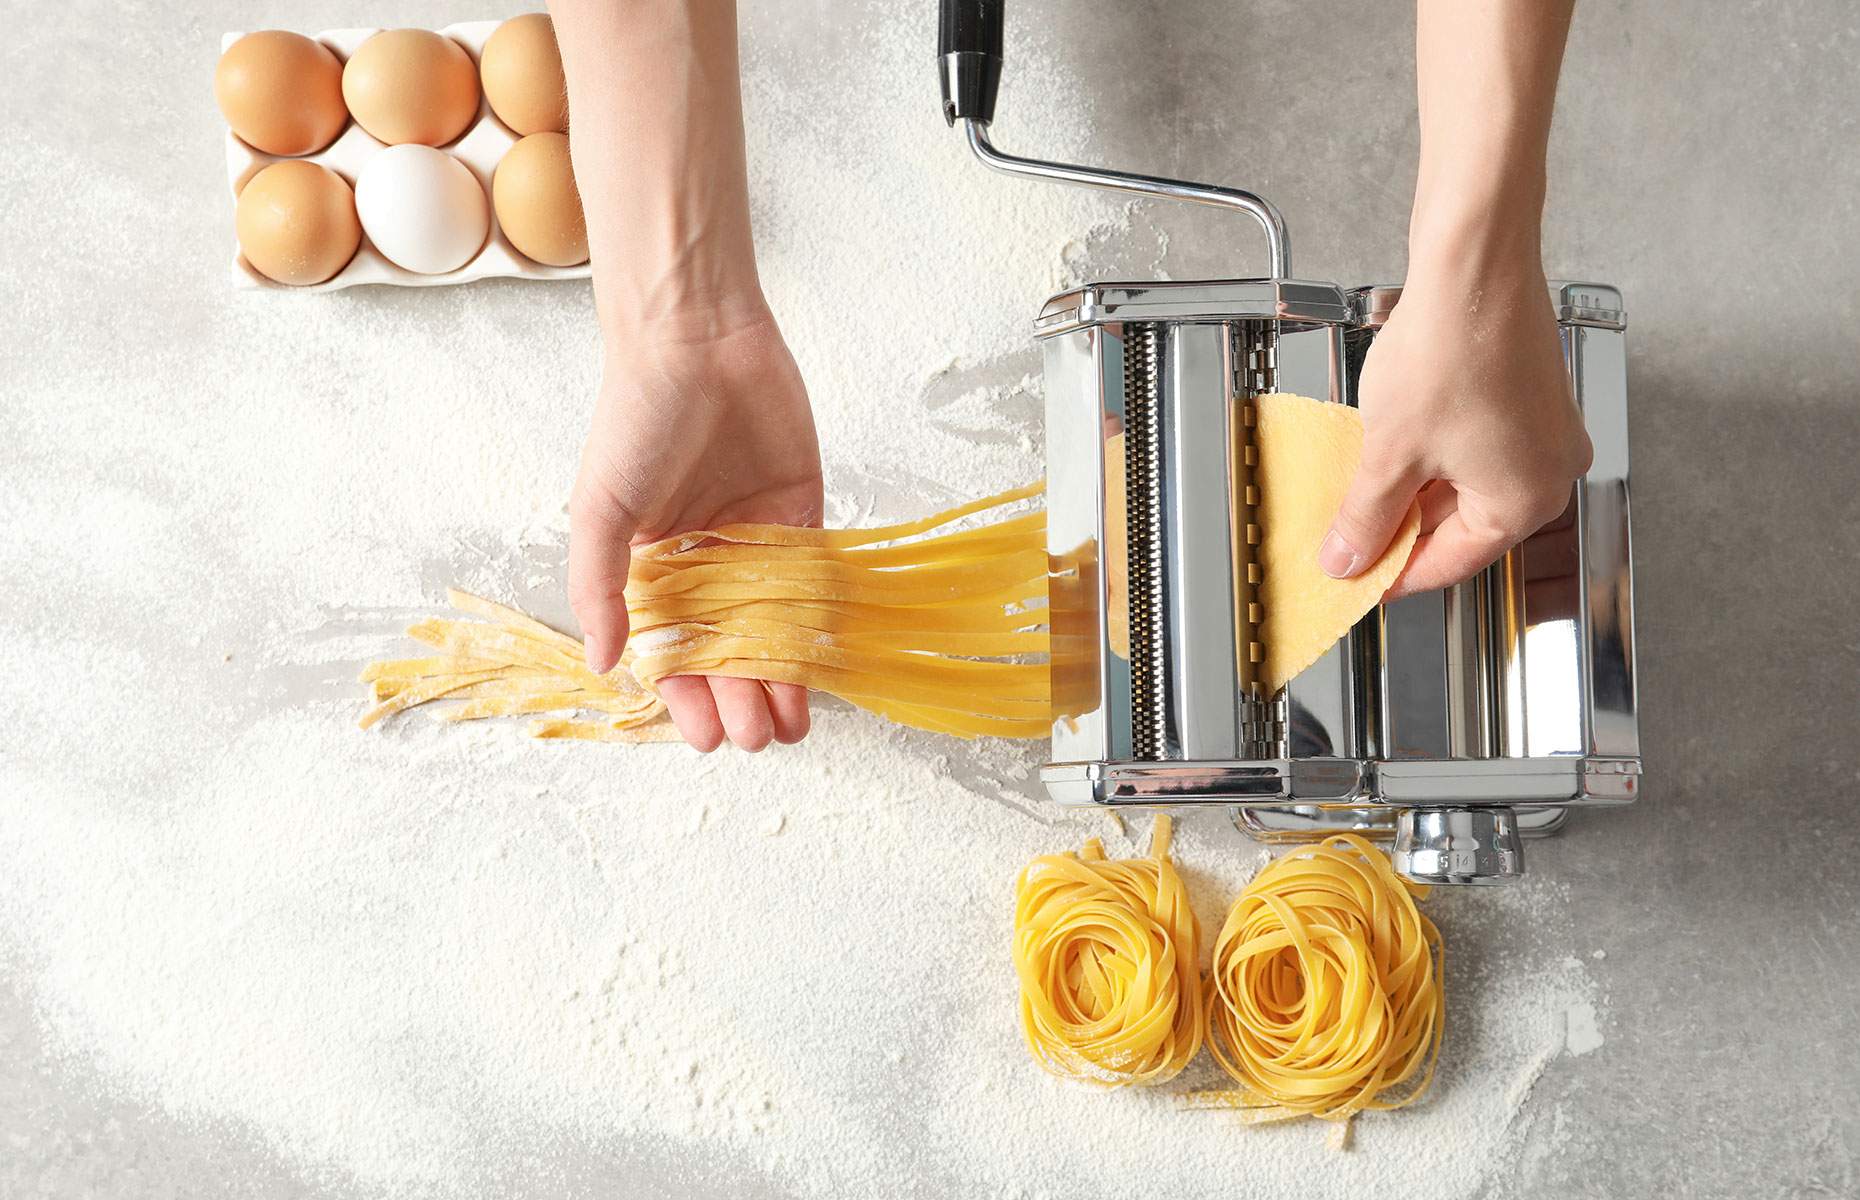 Homemade pasta noodles taking shape in a machine